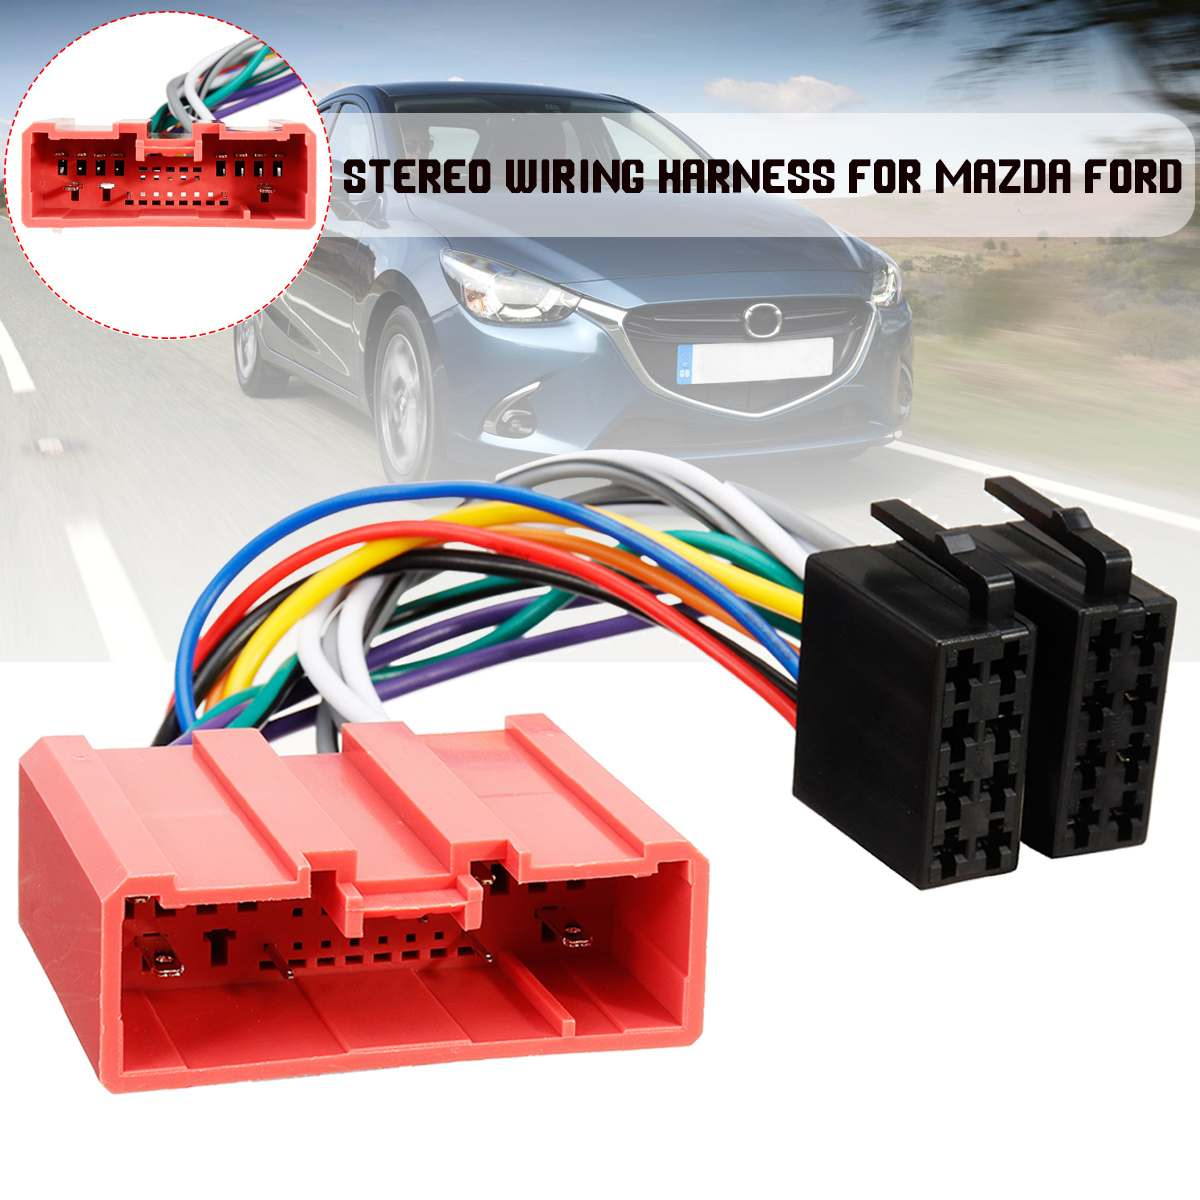 ford car stereo wiring harness top 10 most popular mazda wiring harness stereo list and get free  mazda wiring harness stereo